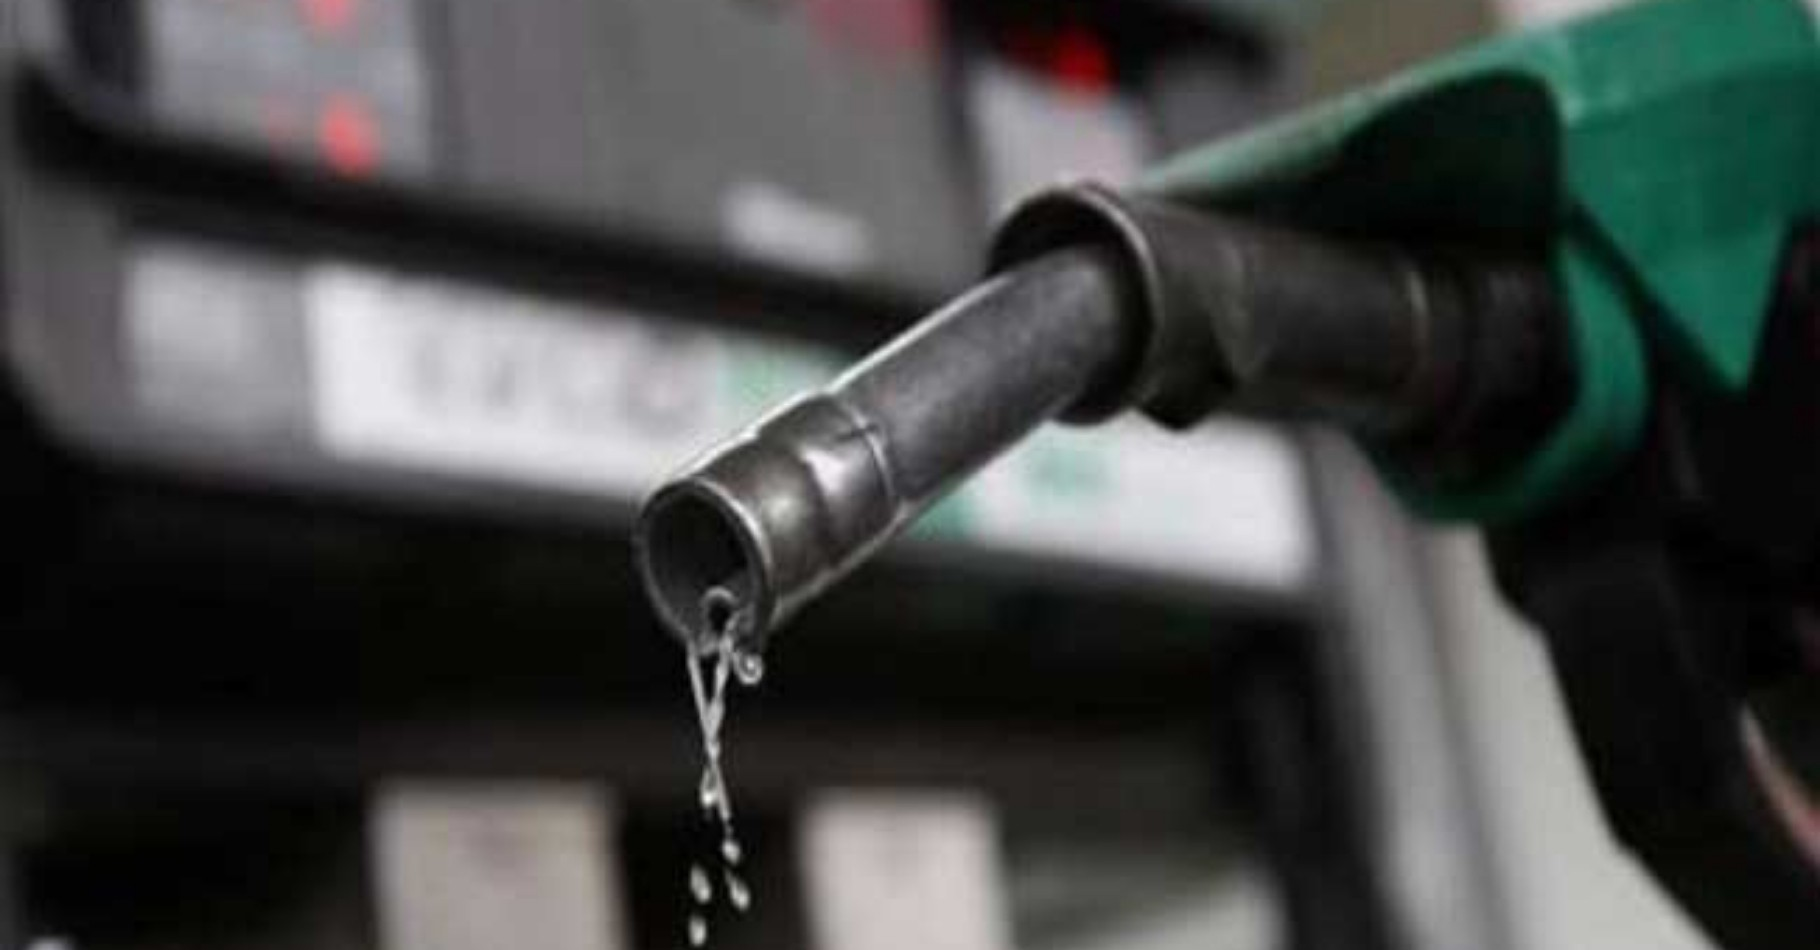 Lockdown: DPR wants Niger Govt to extend time for motorists to purchase fuel